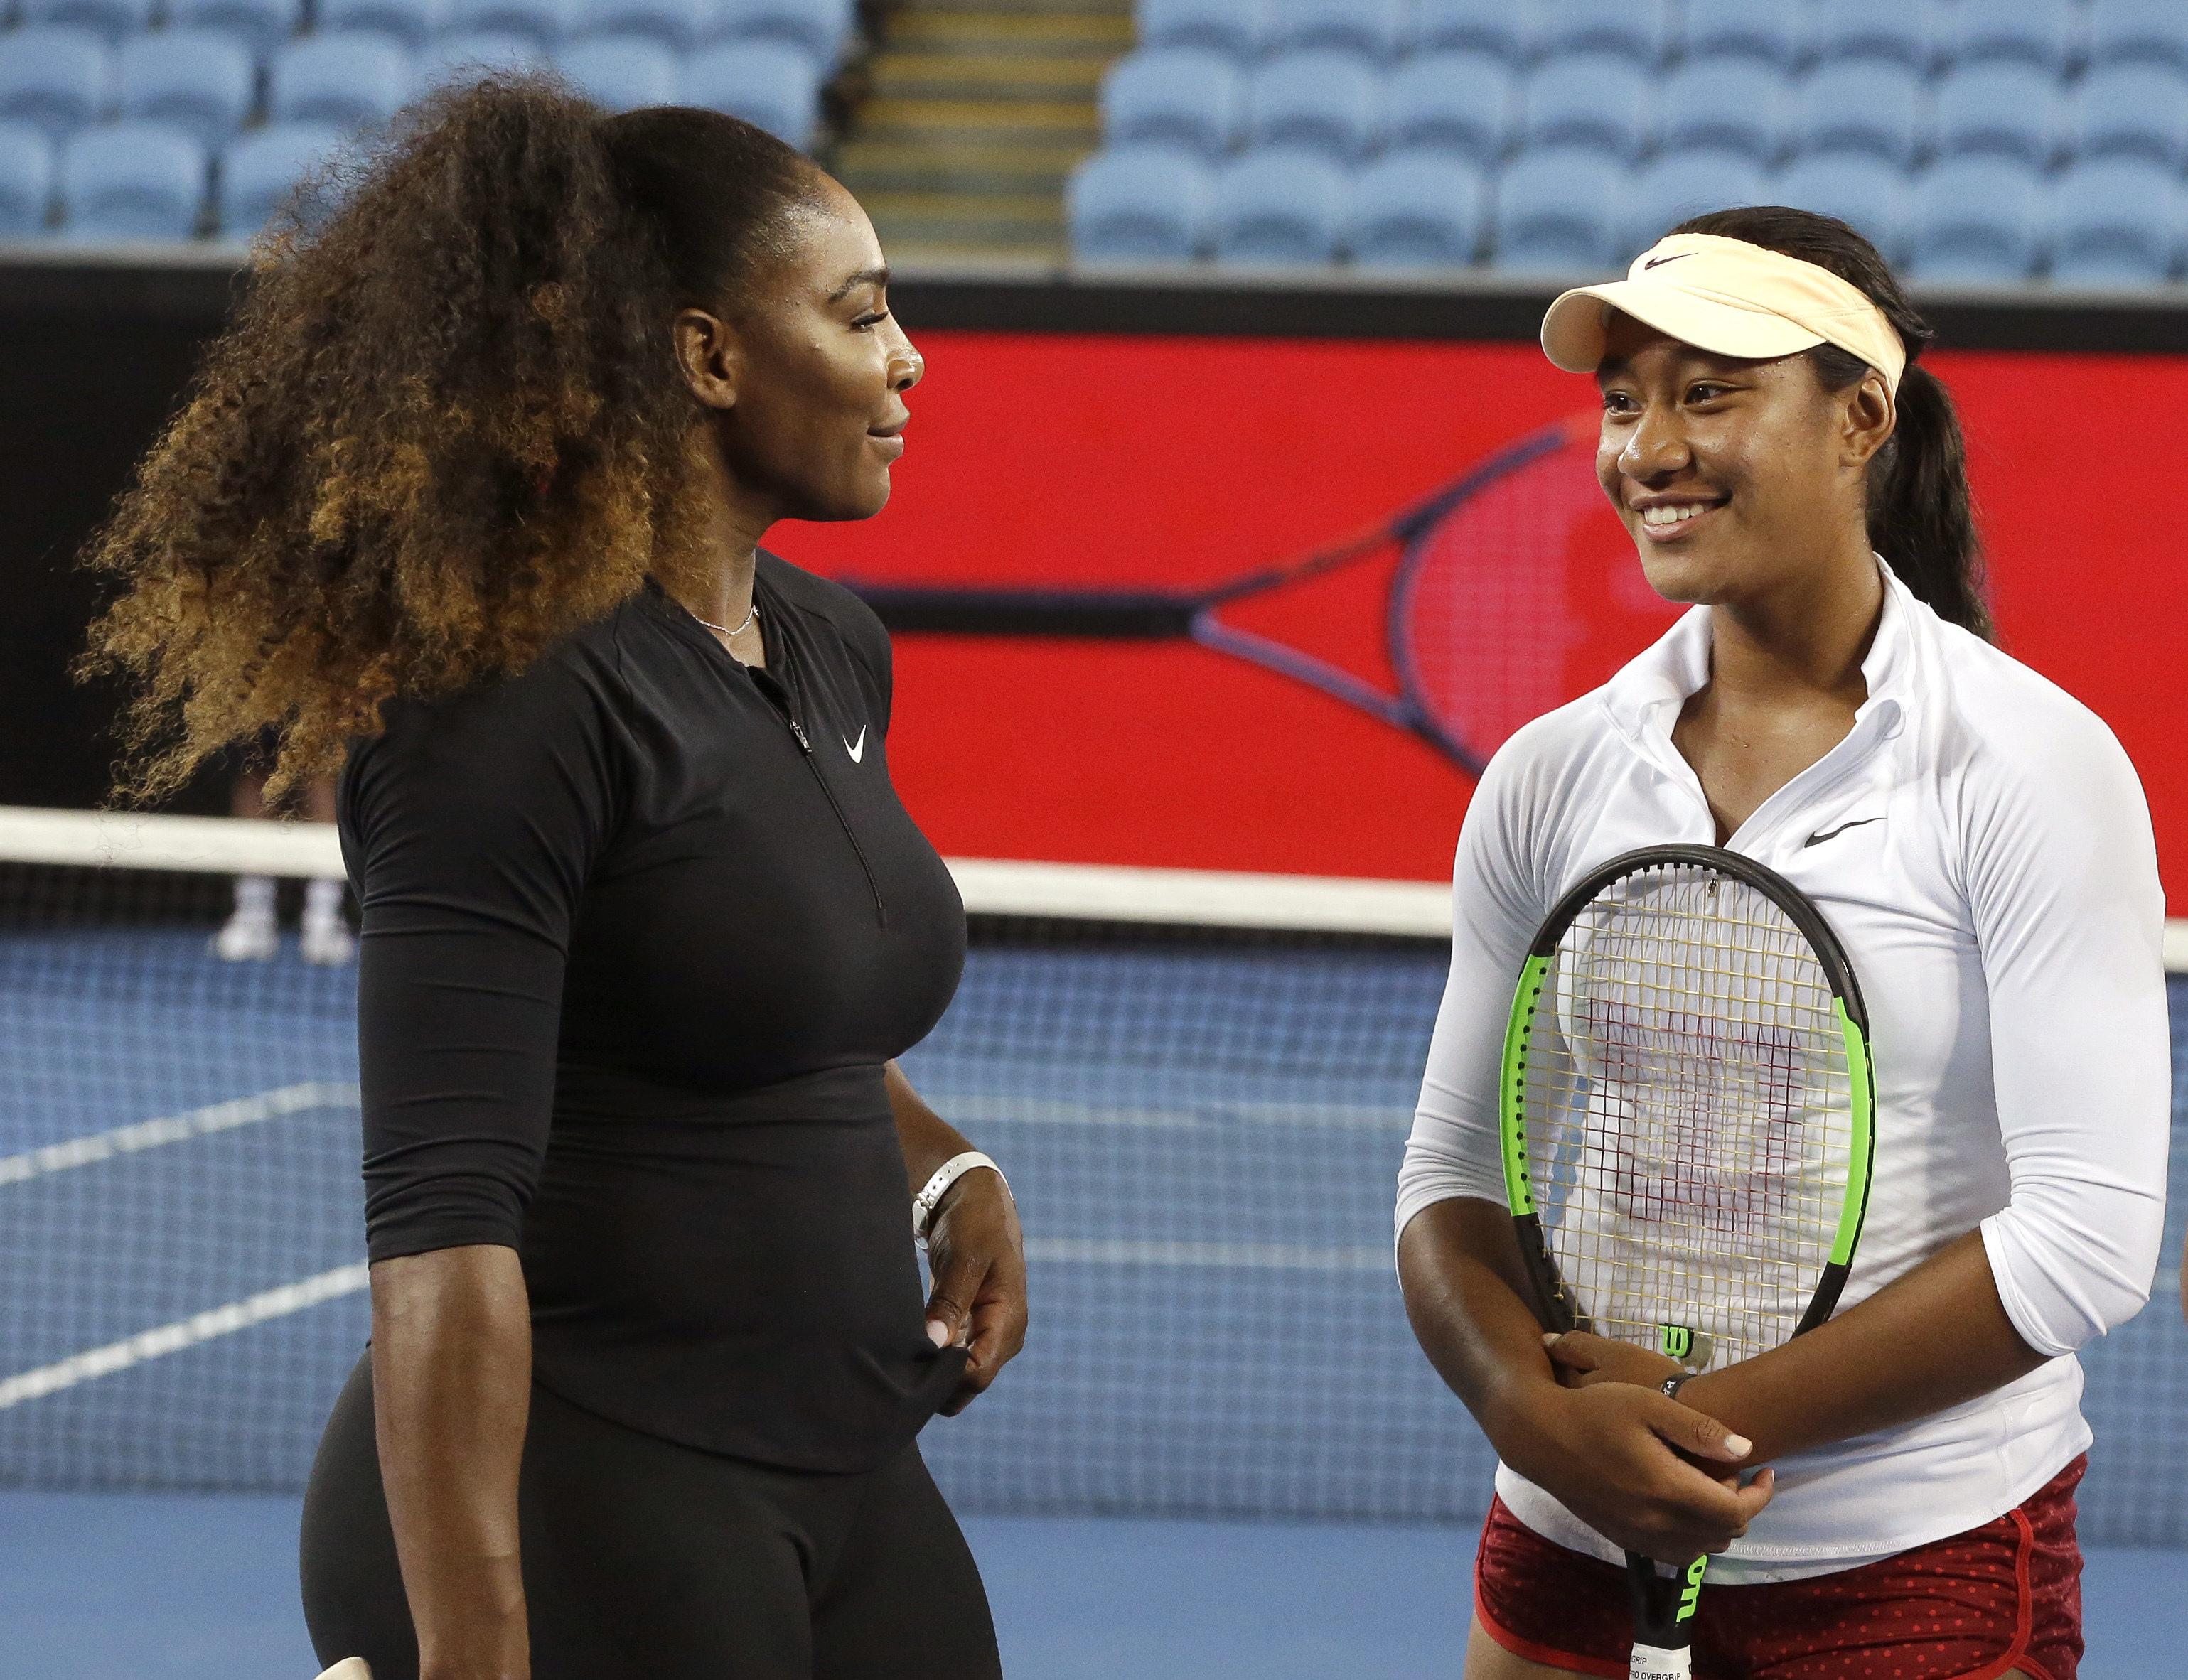 United States' Serena Williams, left, talks with Australian player Destanee Aiava during a promotional event on Margaret Court Arena ahead of the Australian Open tennis championships in Melbourne, Australia, Thursday, Jan. 12, 2017. Aiava will be the firs